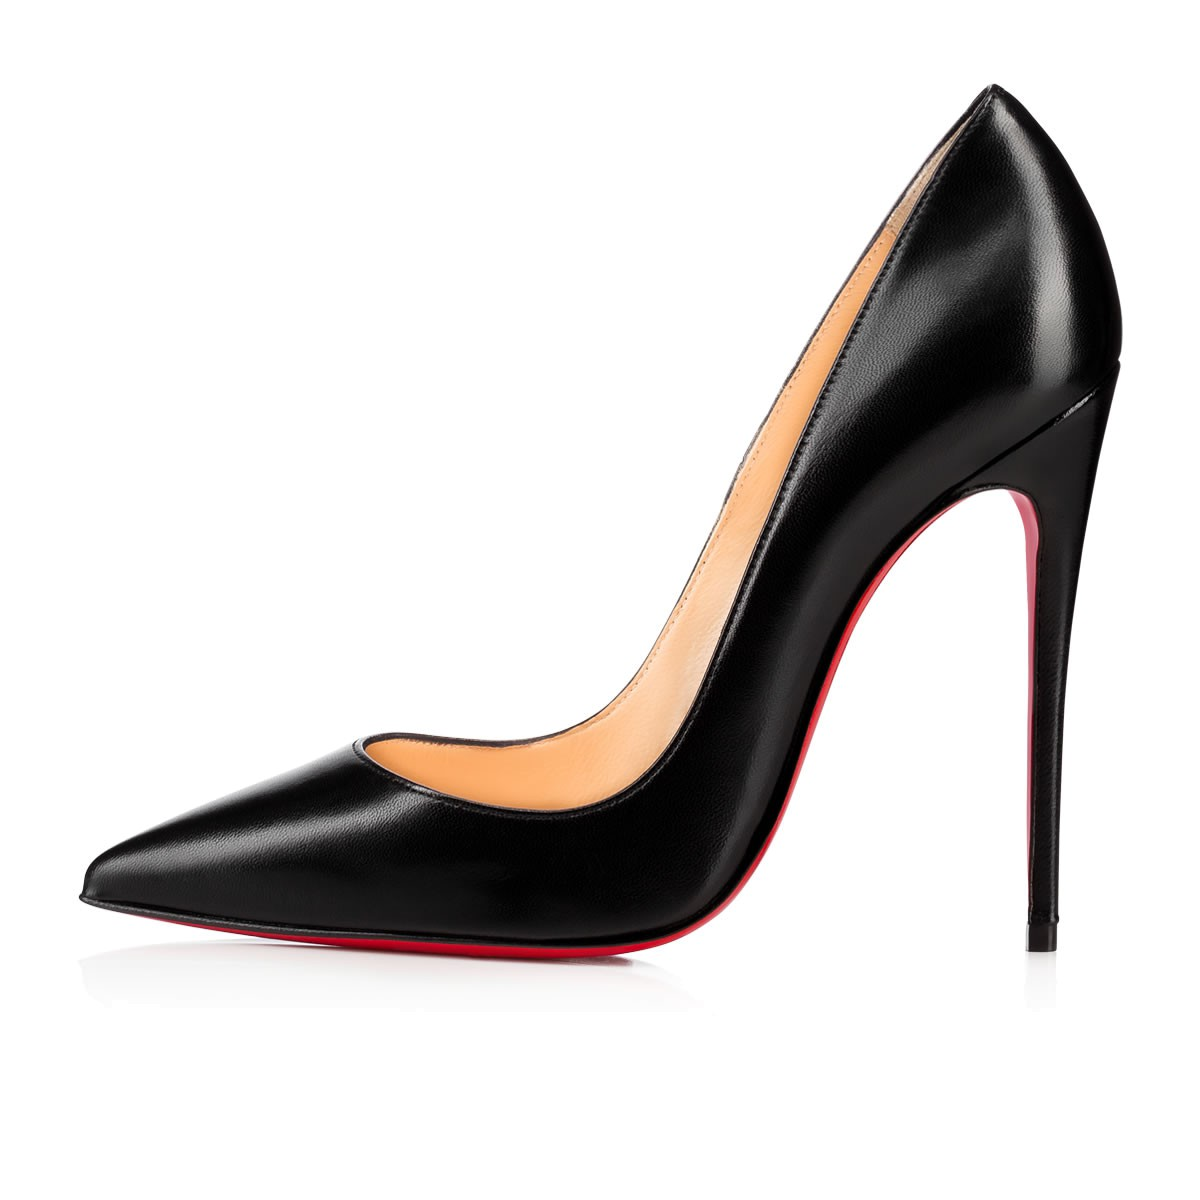 d512d592d579 ... Shoes - So Kate - Christian Louboutin ...